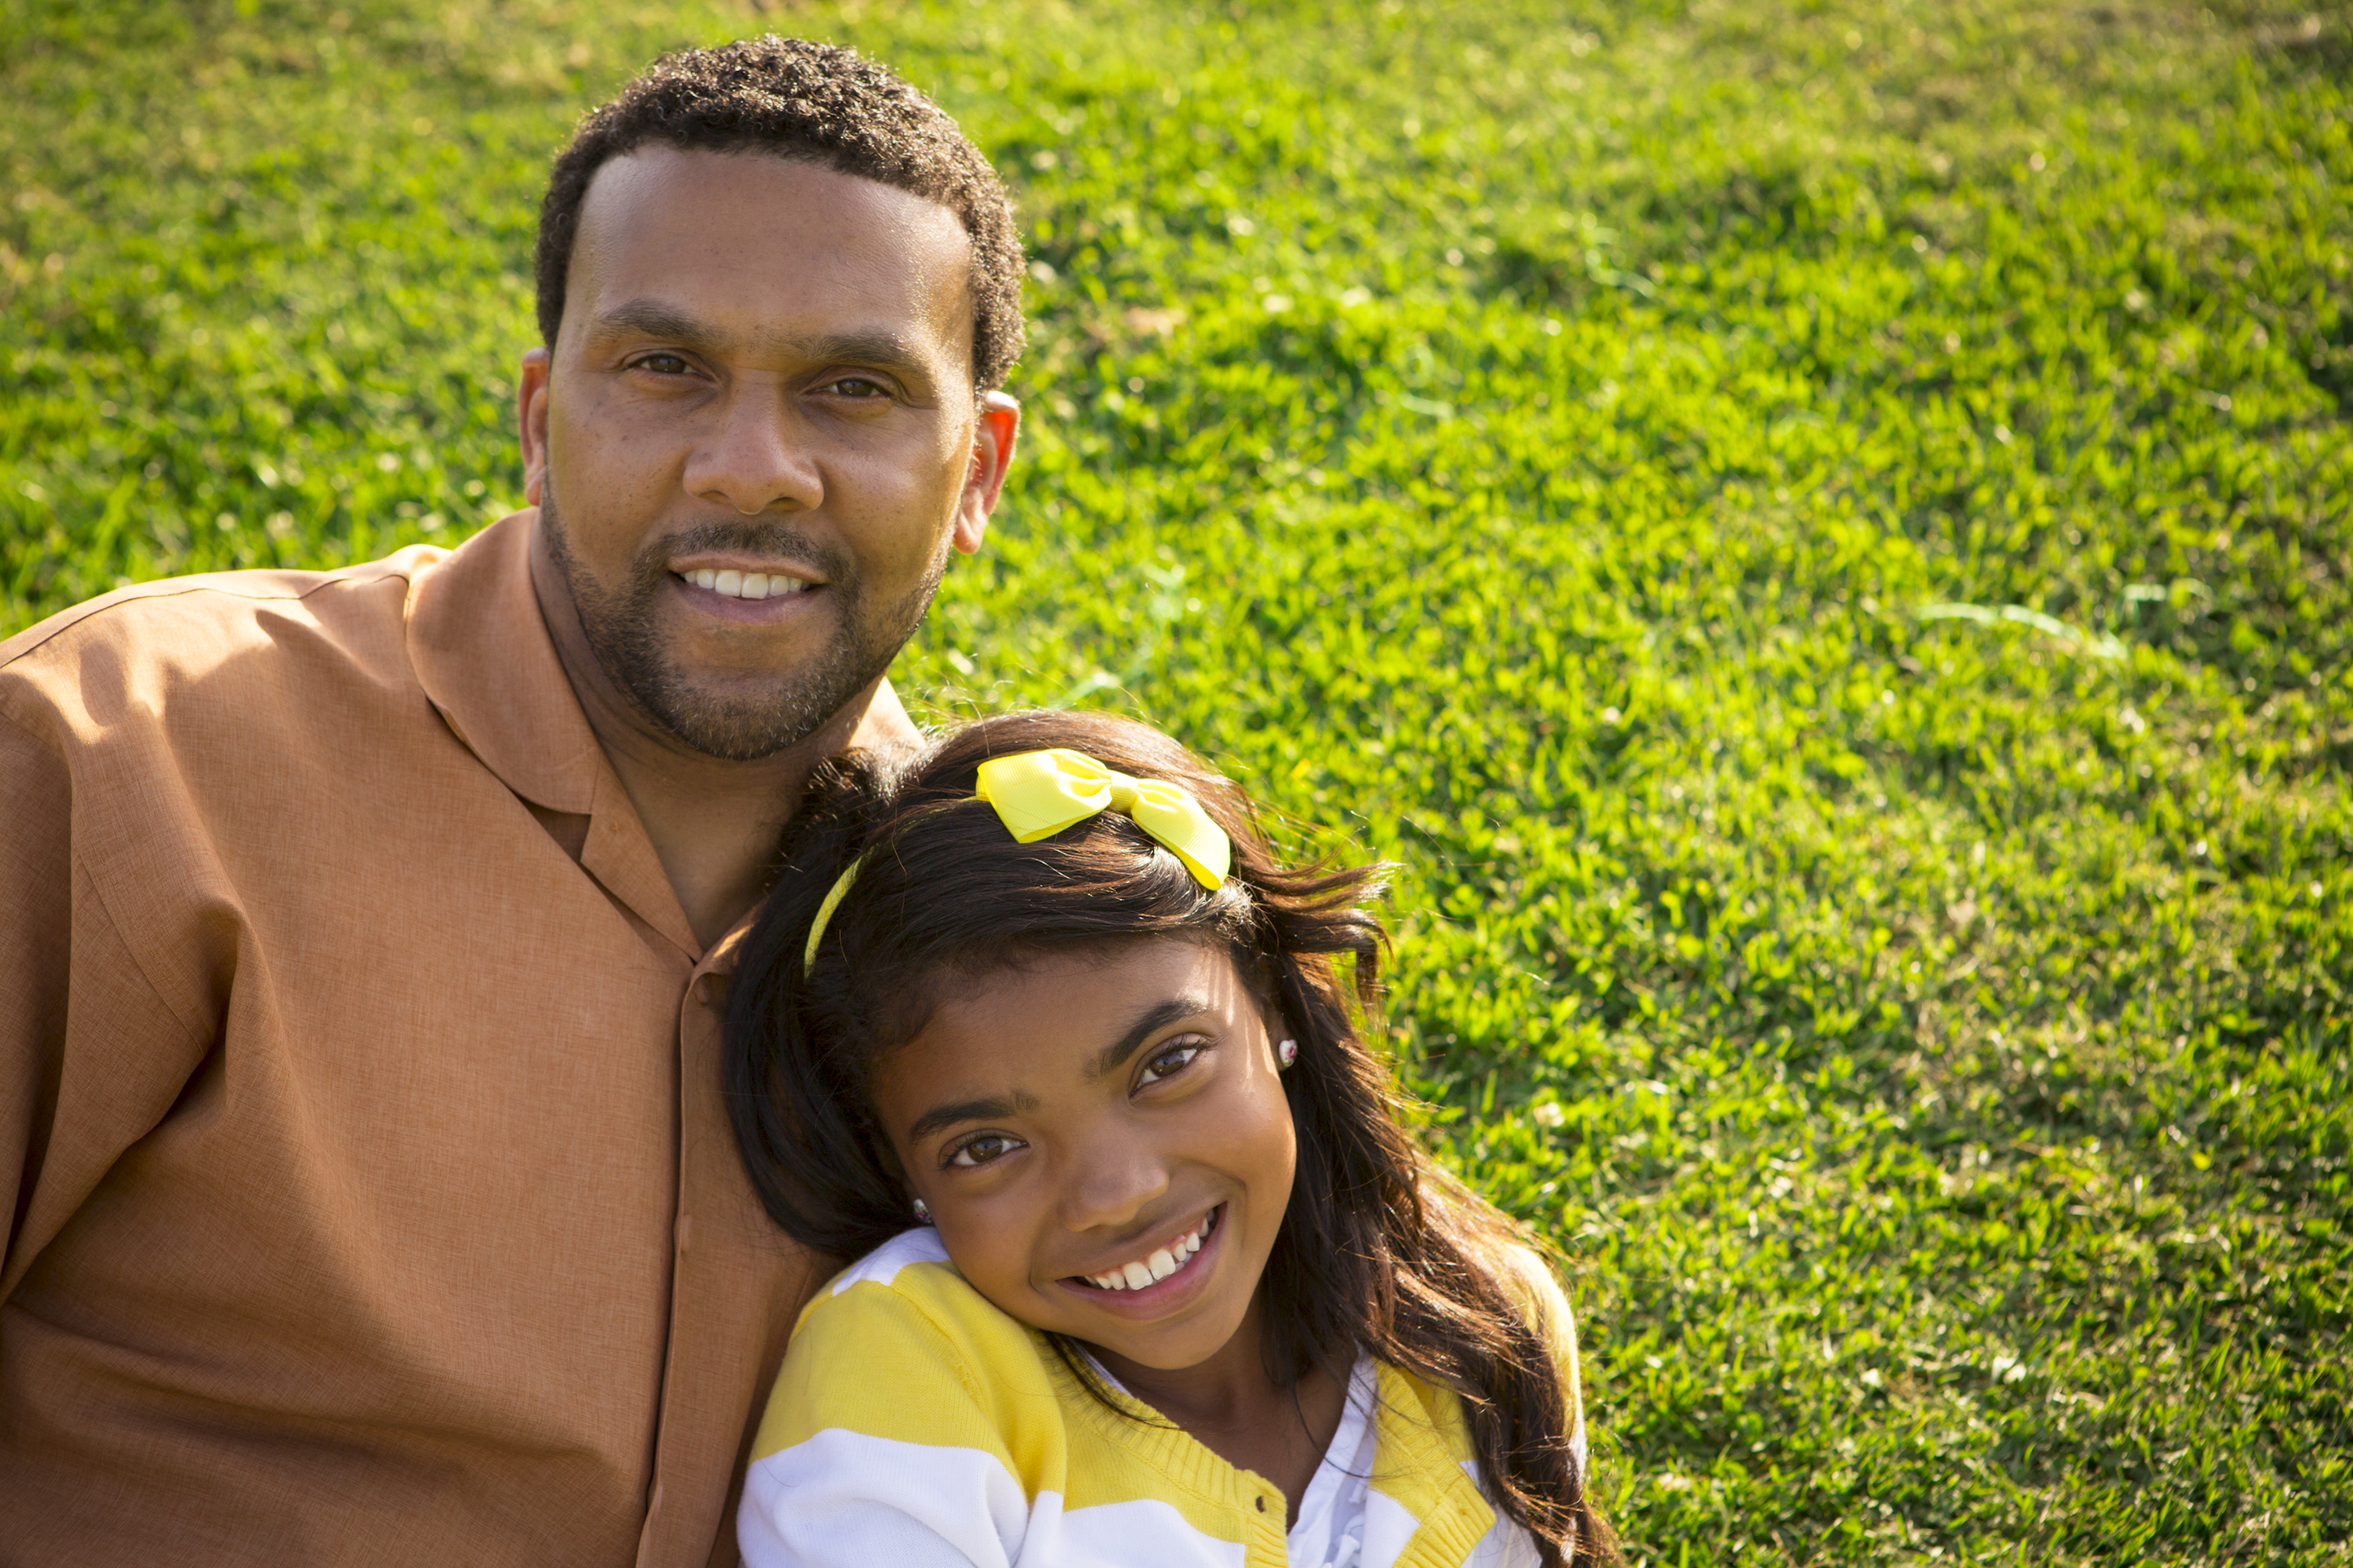 camp creek christian single men How to meet rich men in atlanta  this makes atlanta home to many wealthy and successful people among which there are sure to be some singles as  camp creek.